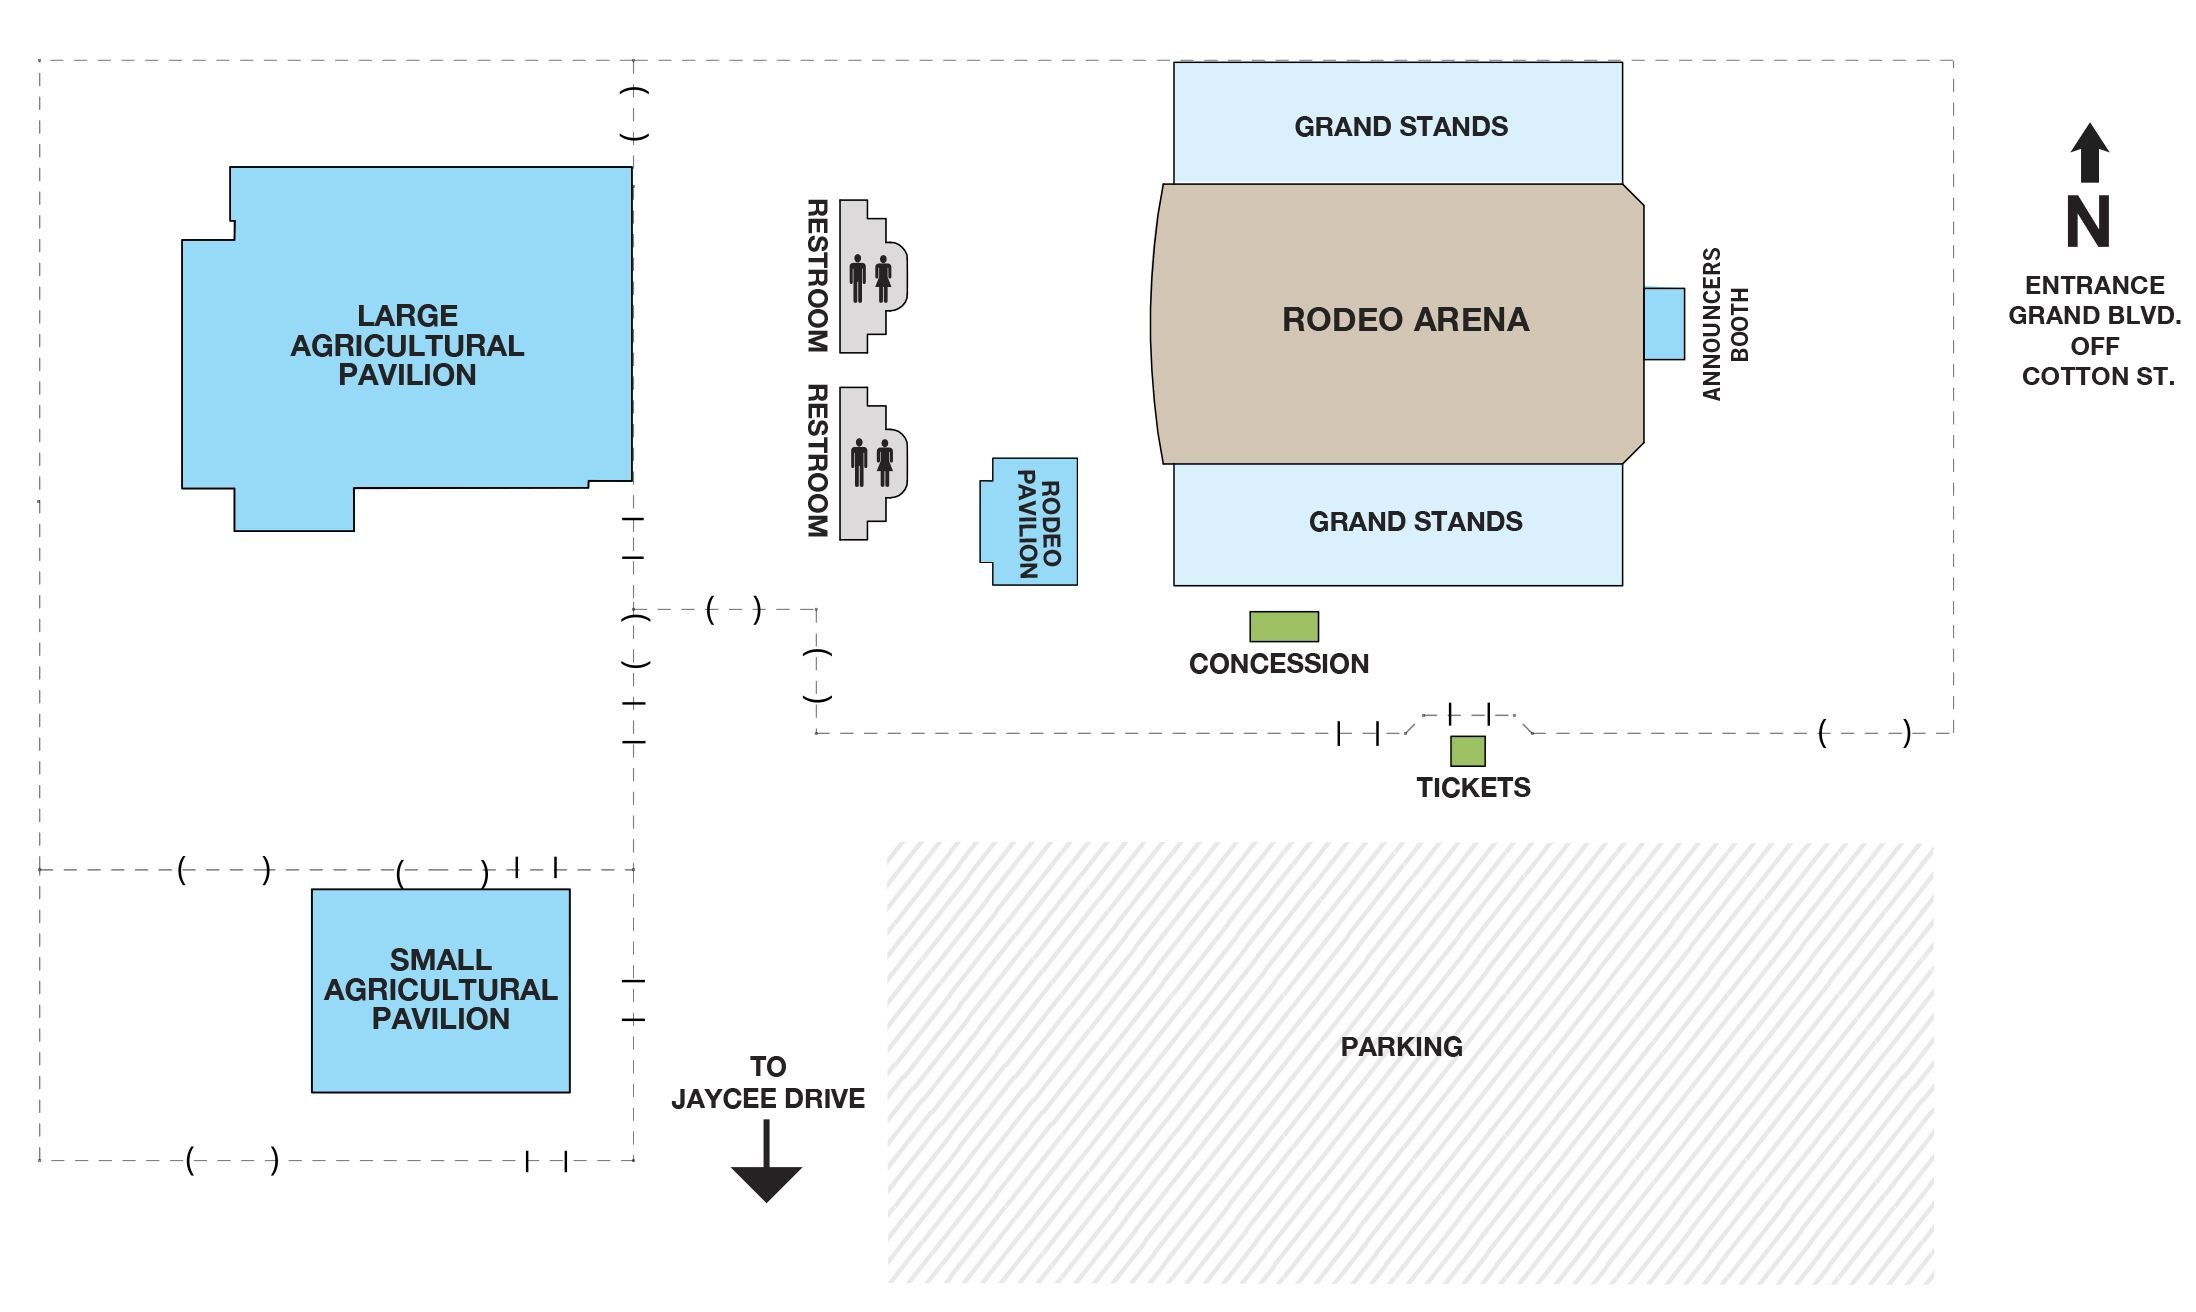 Rodeo Arena and Pavilions Layout